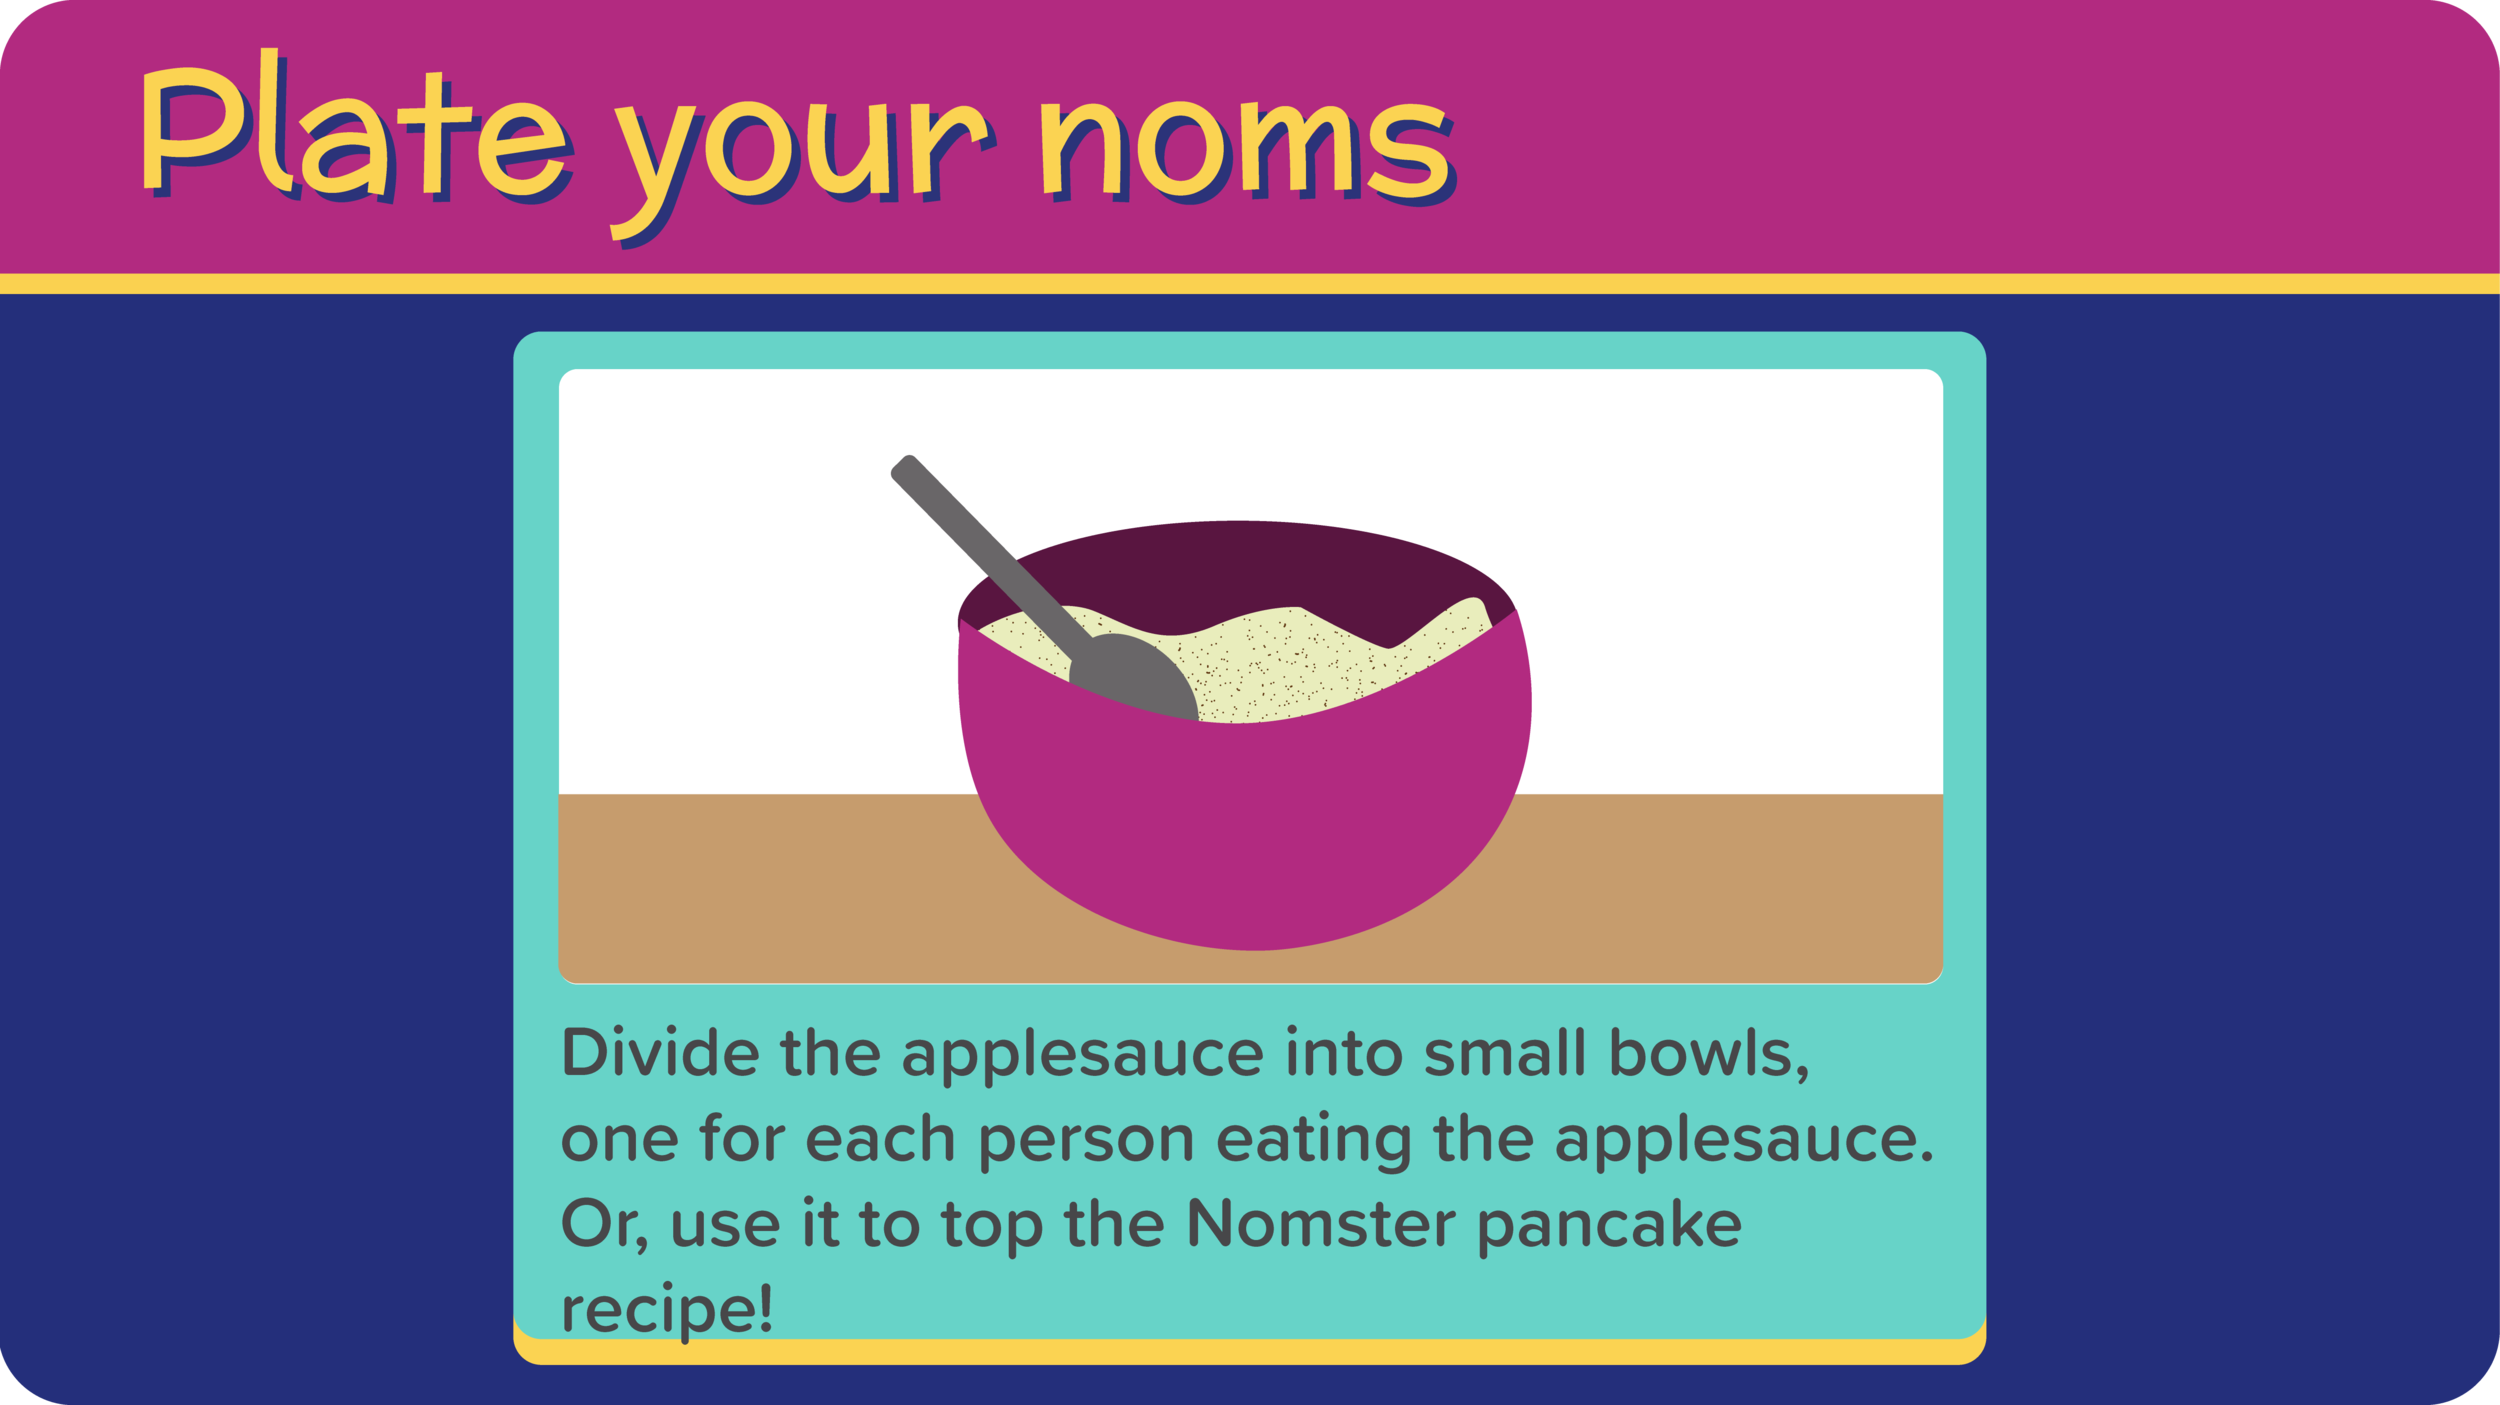 20_AppleSauce_plate your noms-01.png